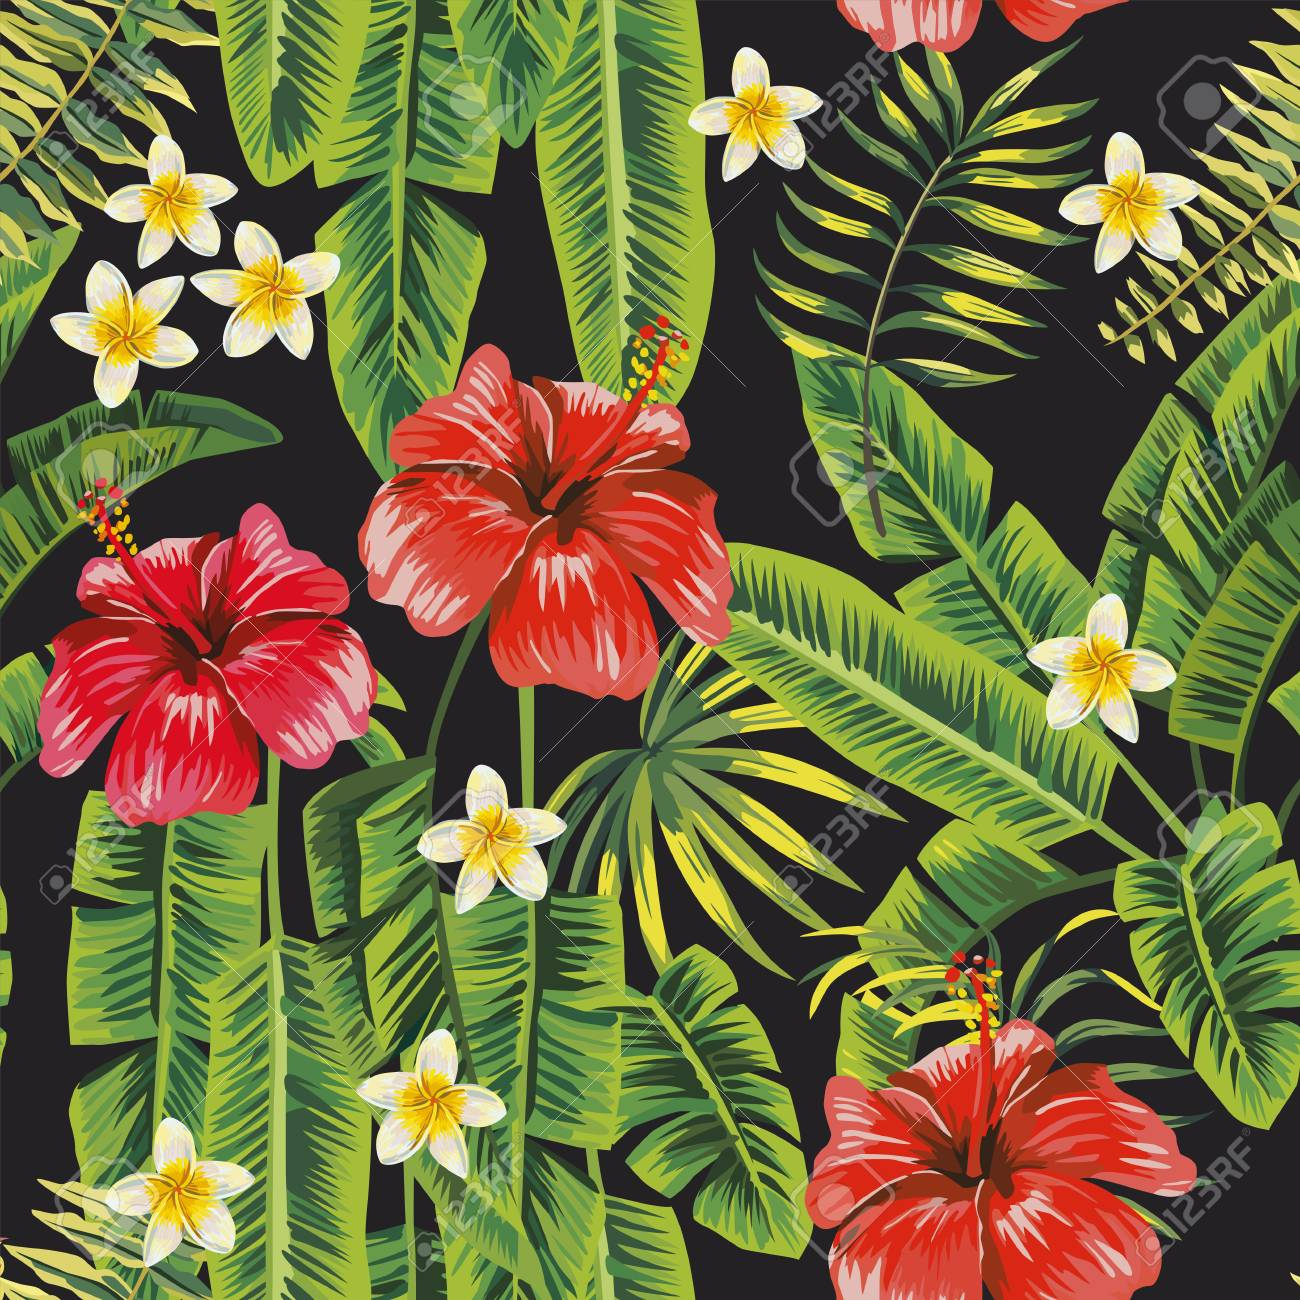 Banana green leaves and red hibiscus, white plumeria (frangipani) flowers seamless pattern black background. Vector botanical compoition - 122038696